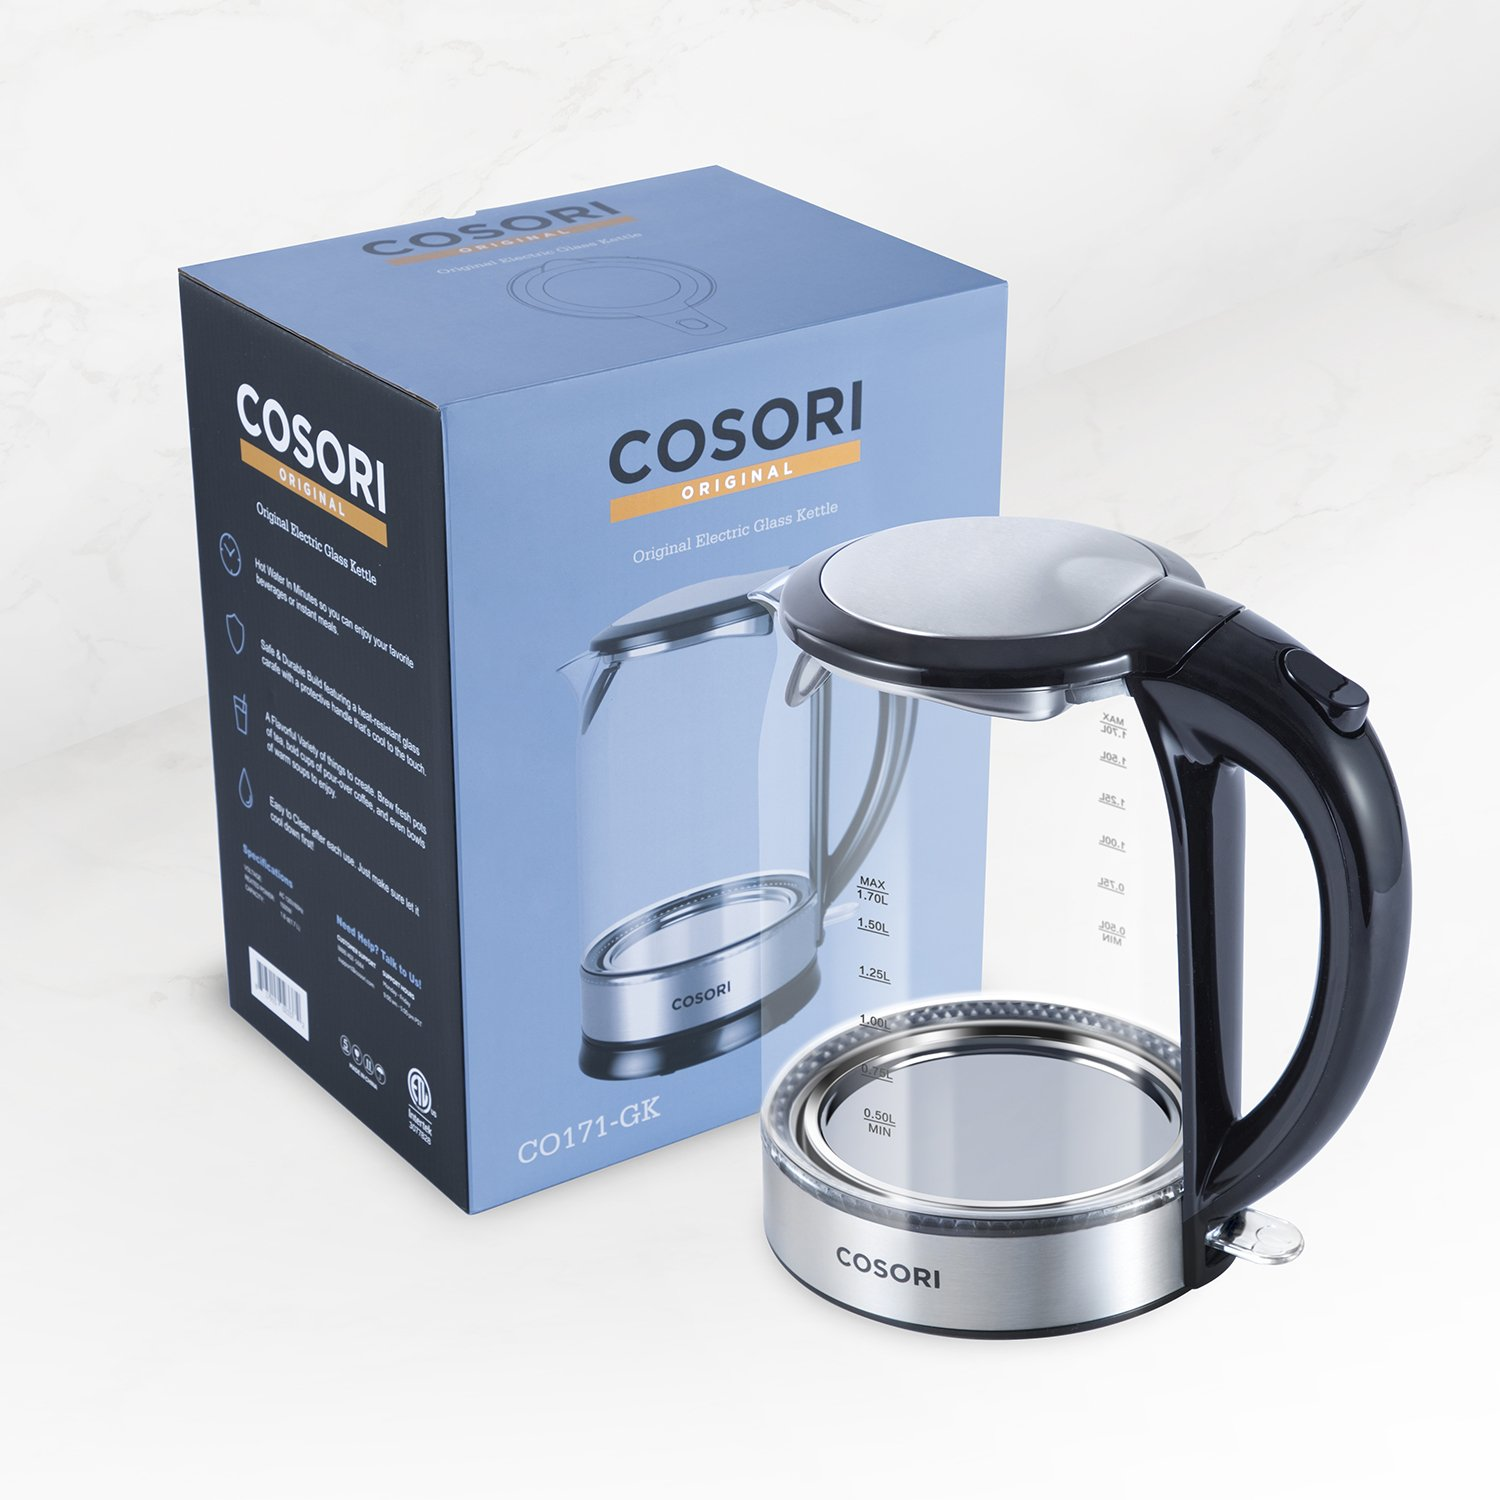 COSORI 1.7L Electric Kettle(BPA-Free), Cordless Glass Boiler,Coffee Pot,Water & Tea Heater with LED Indicator,Auto Shut-Off & Boil-Dry Protection,100% Stainless Steel Inner Lid & Bottom,1500W,CO171-GK by COSORI (Image #9)